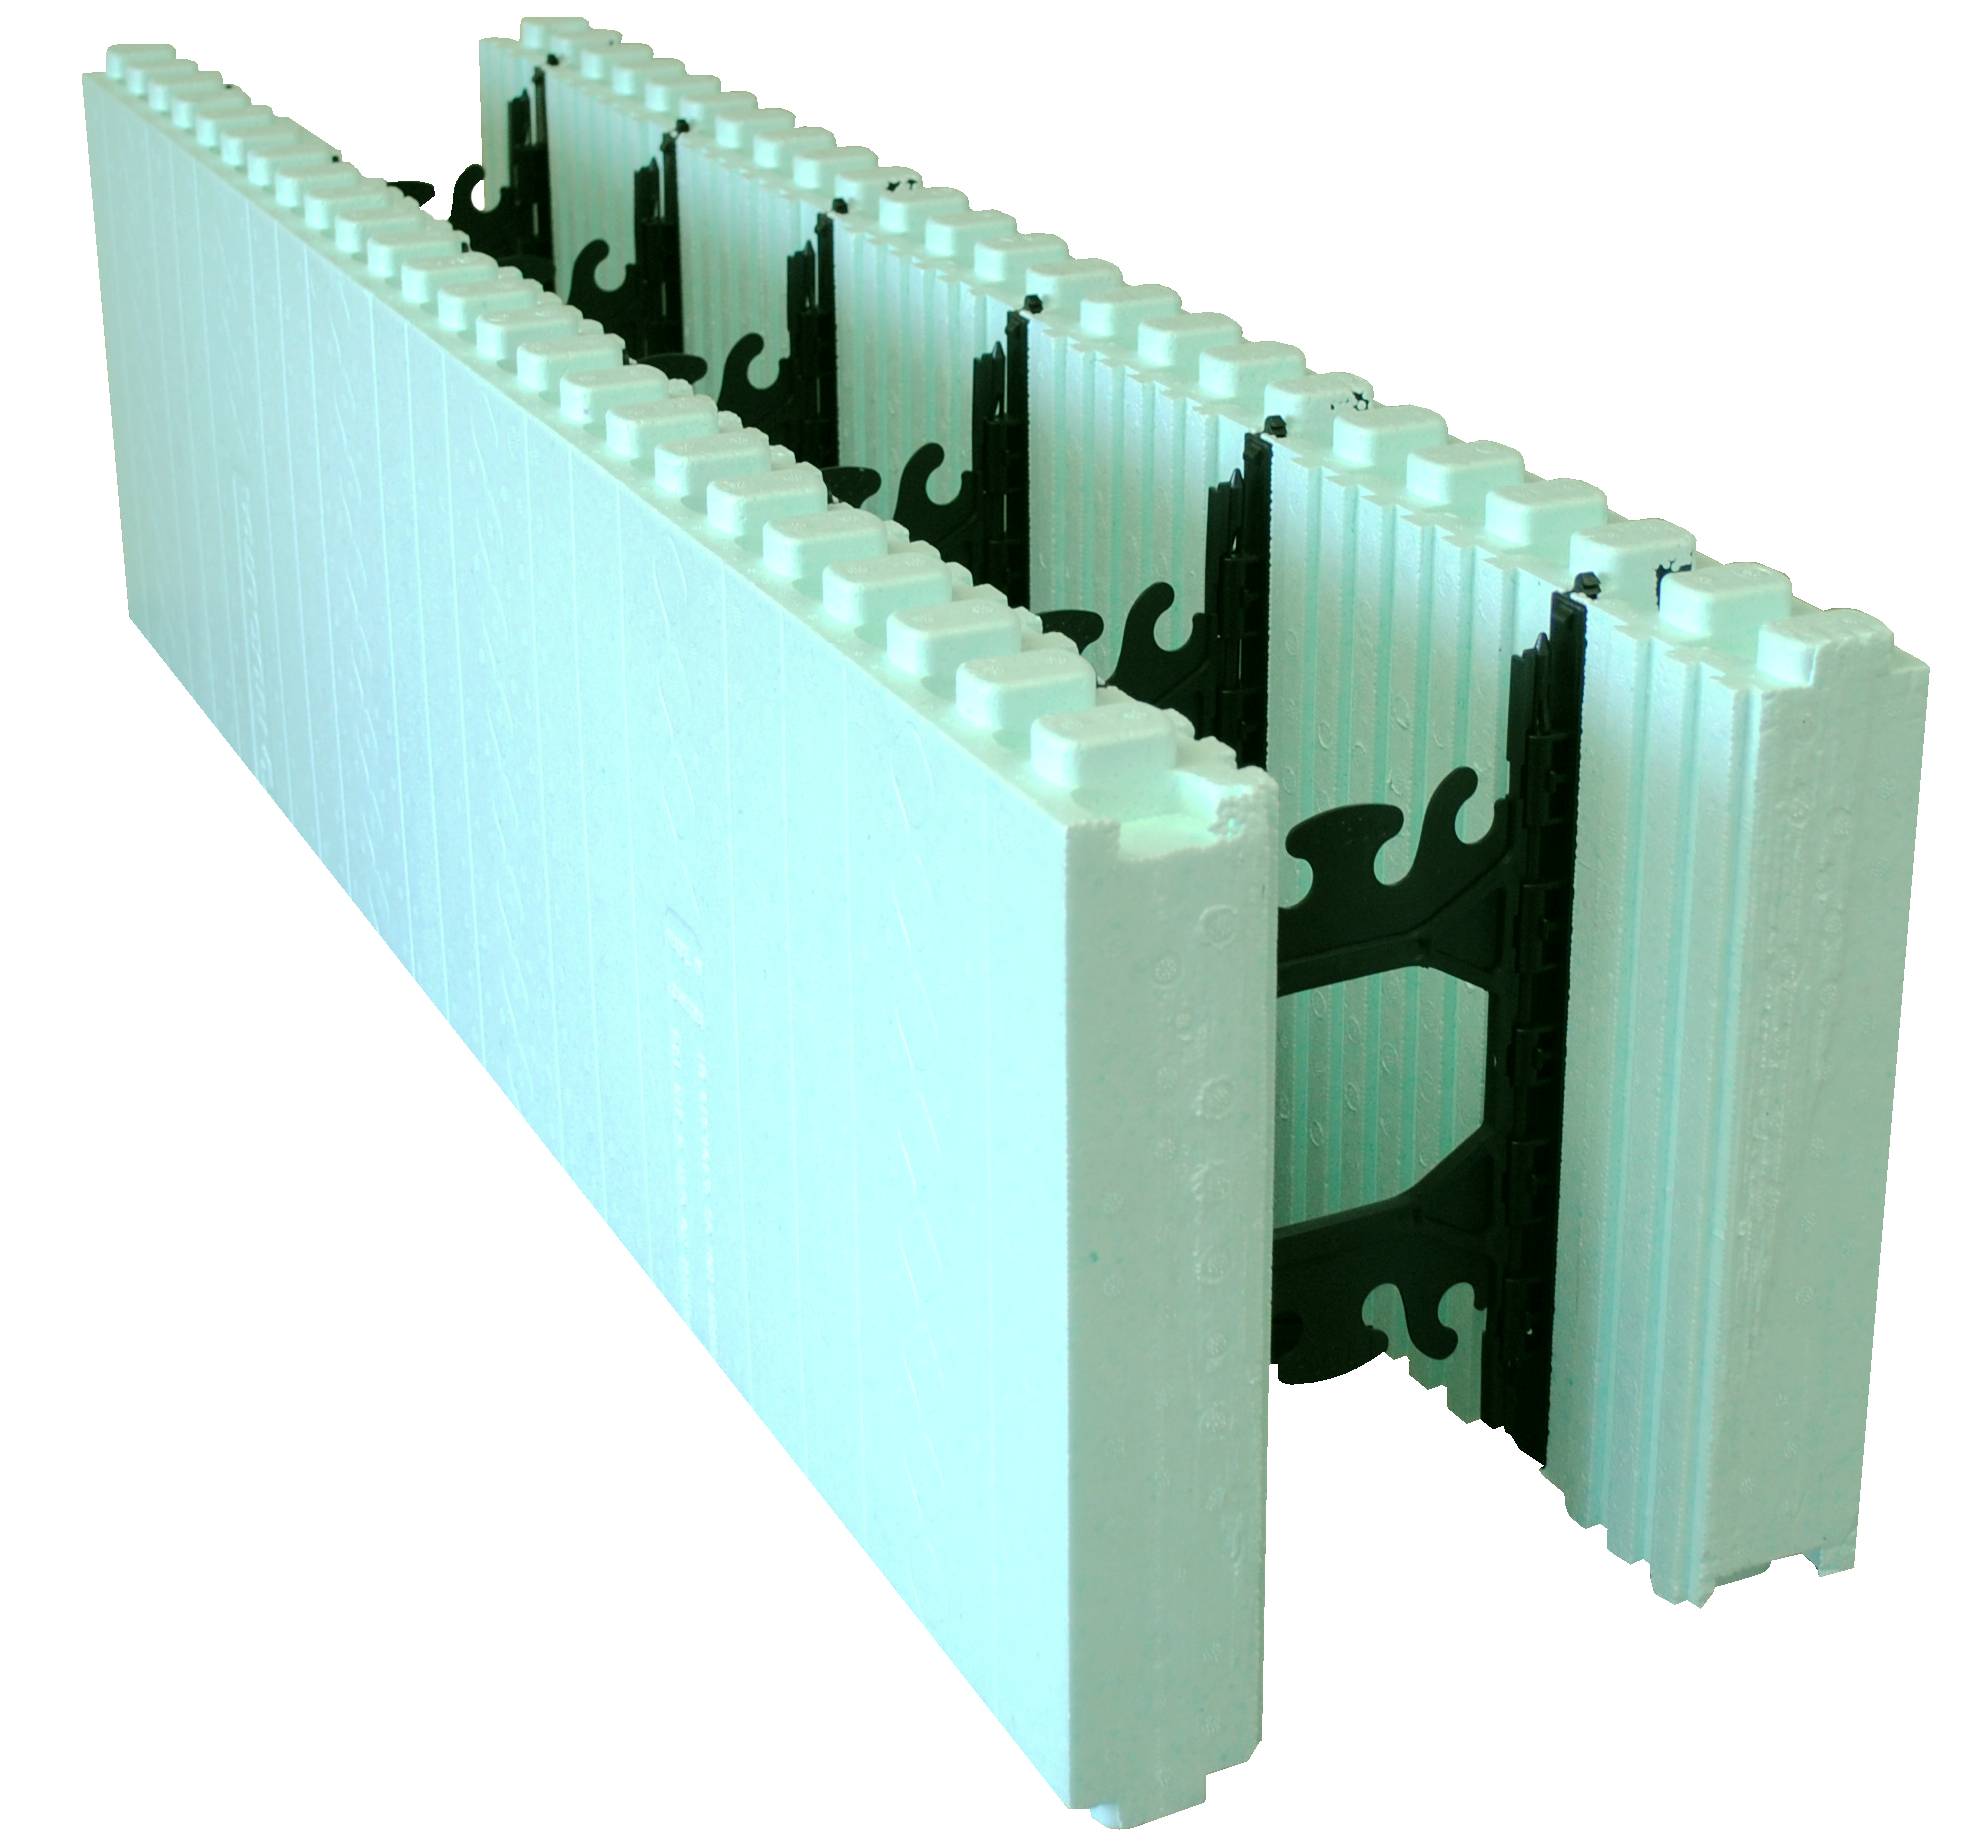 Nudura icf series concrete construction magazine for Icf concrete